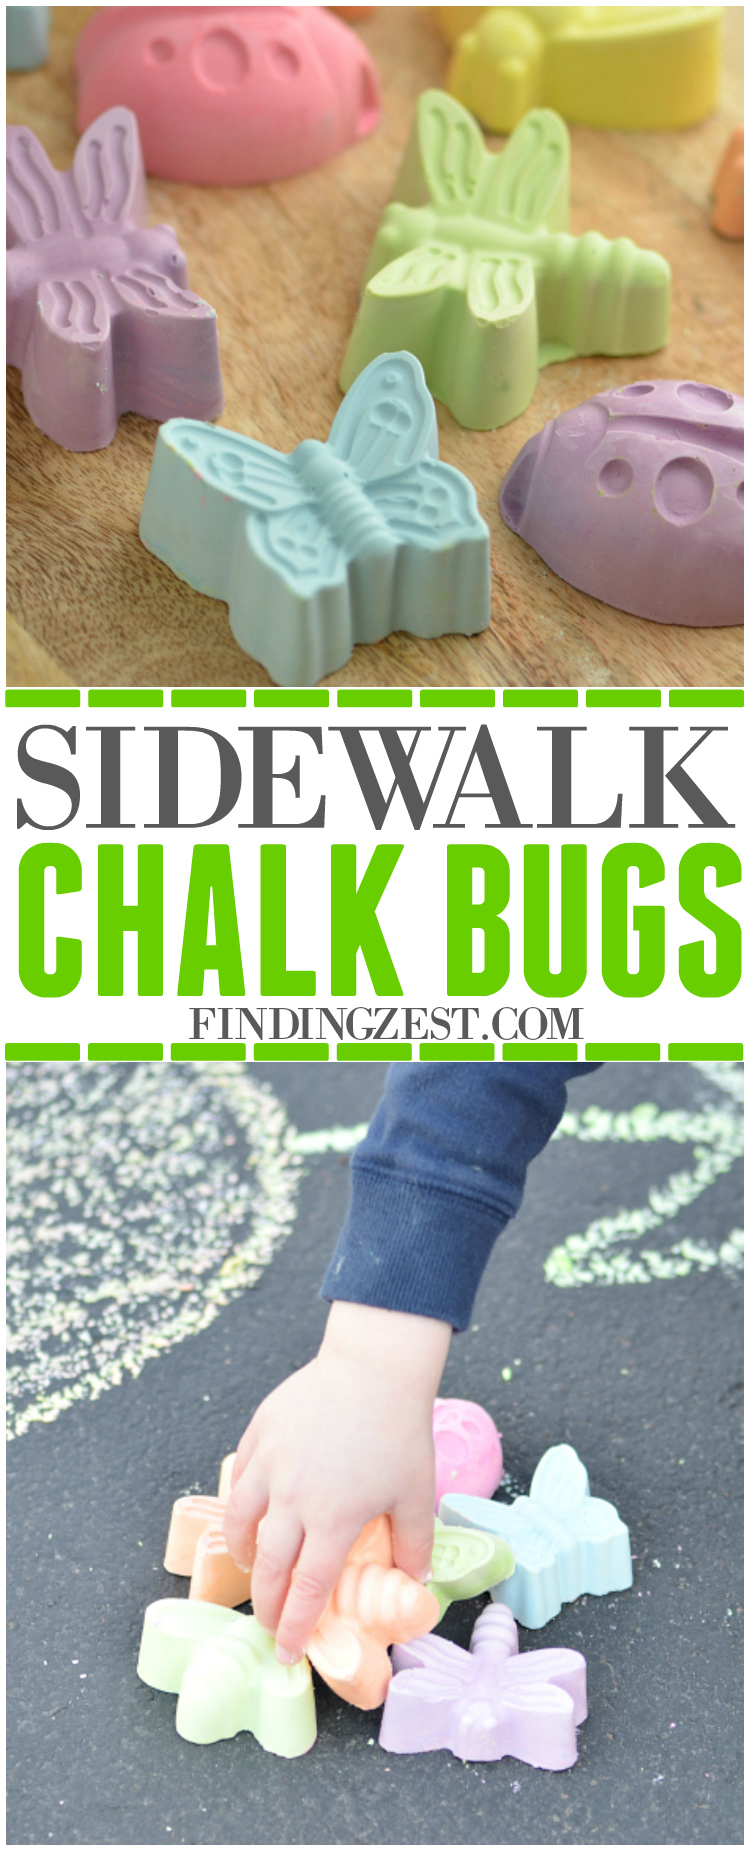 Learn how to make these Easy Homemade Sidewalk Chalk Bugs with just a few ingredients. Makes a great outdoor summer activity for kids or party favors!